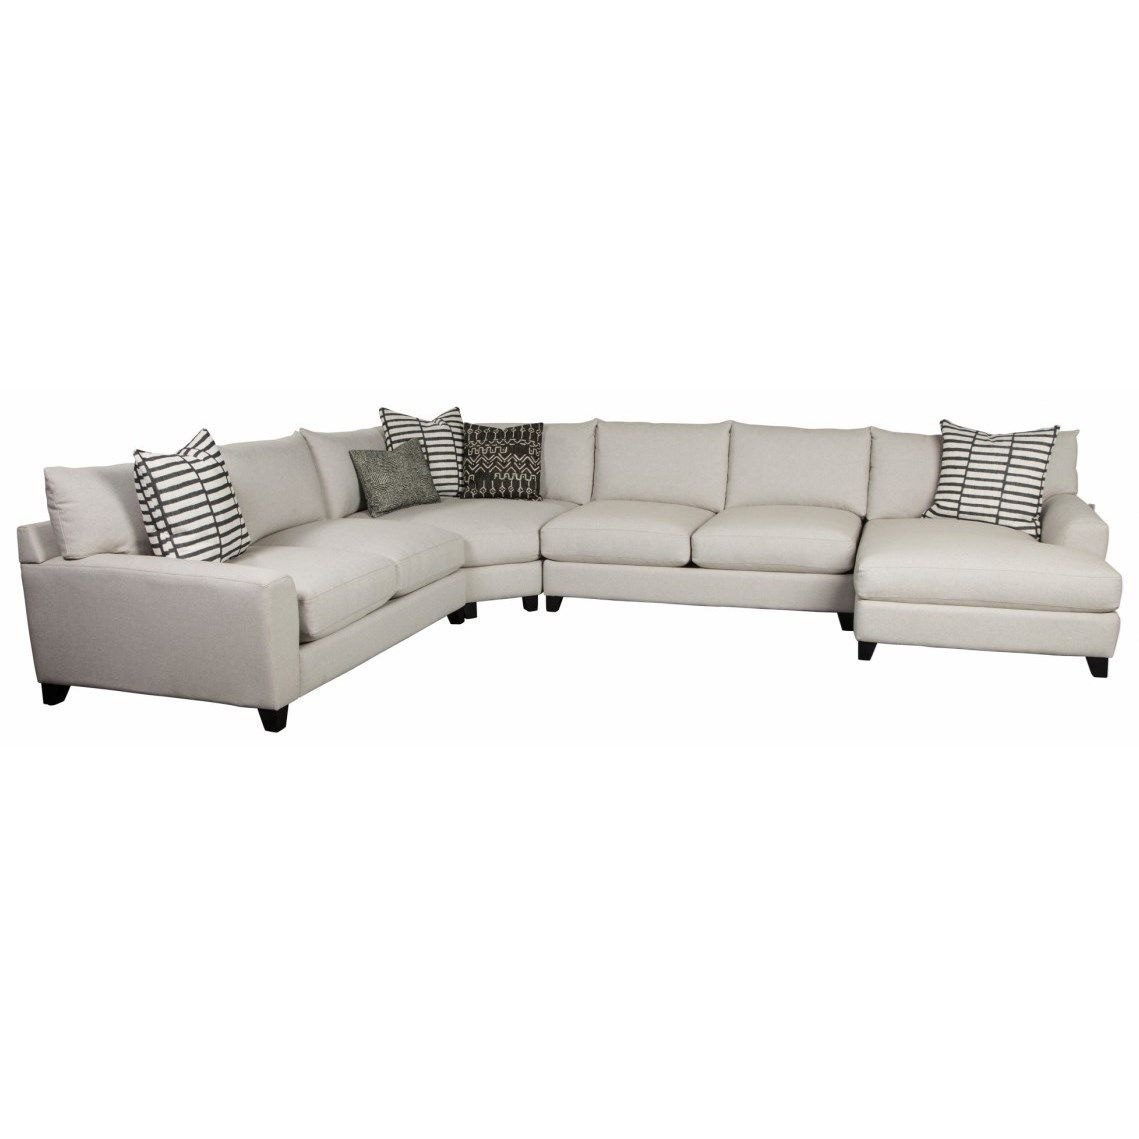 Harris 4 Piece Sectional By Jonathan Louis At Fashion Furniture